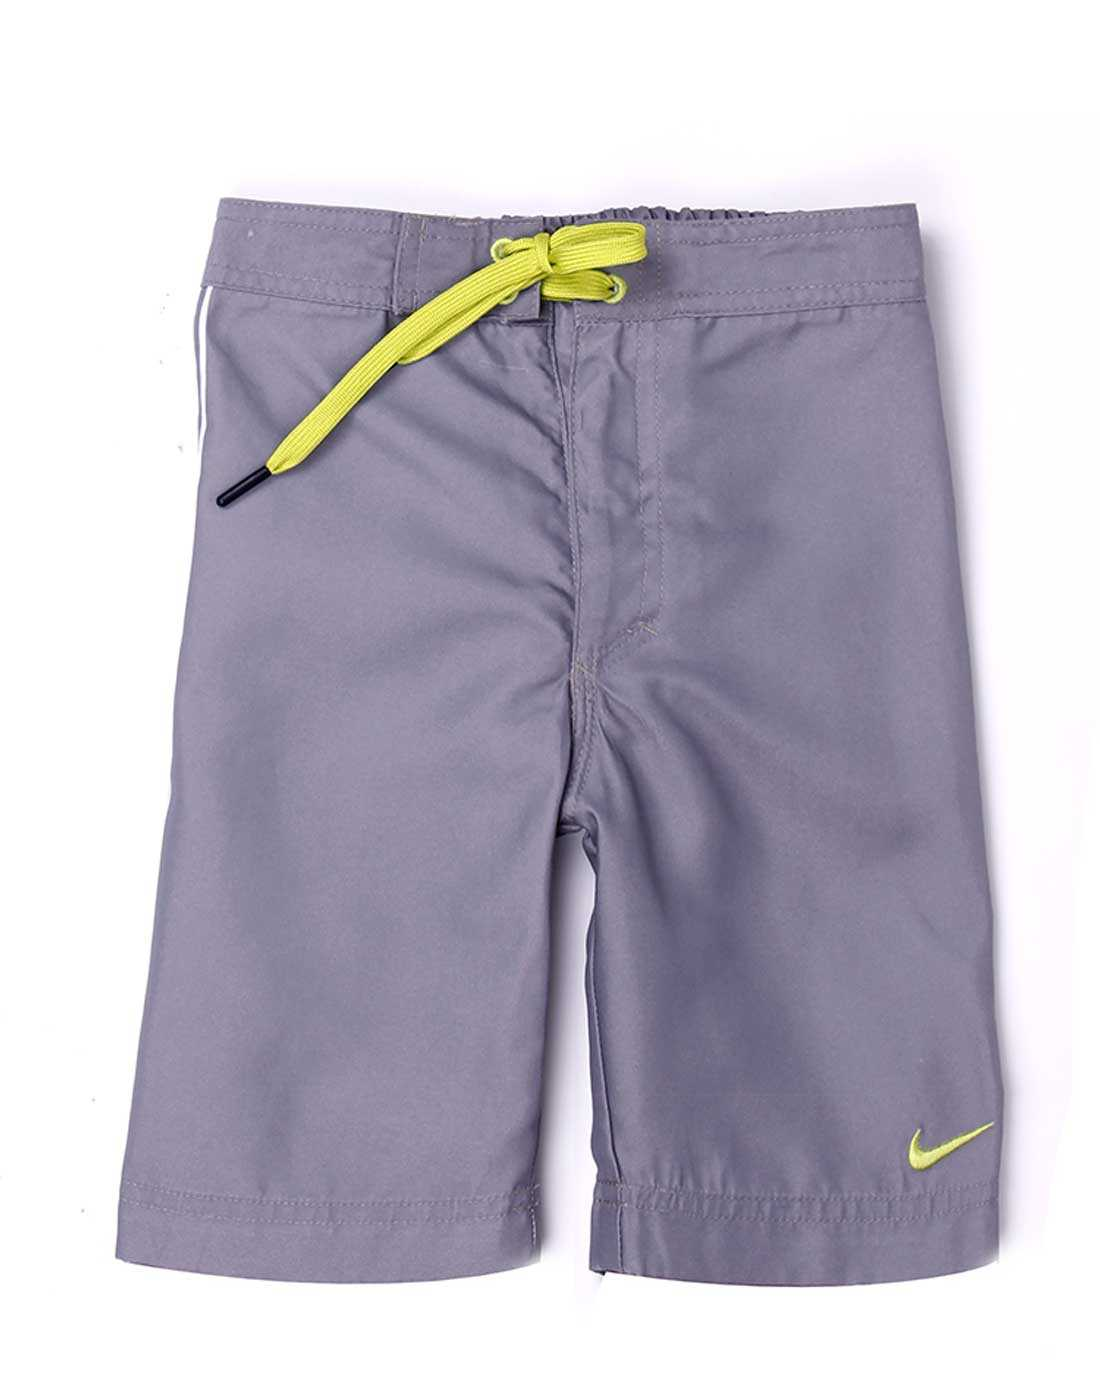 Nike Grey Polyester Boys Shorts